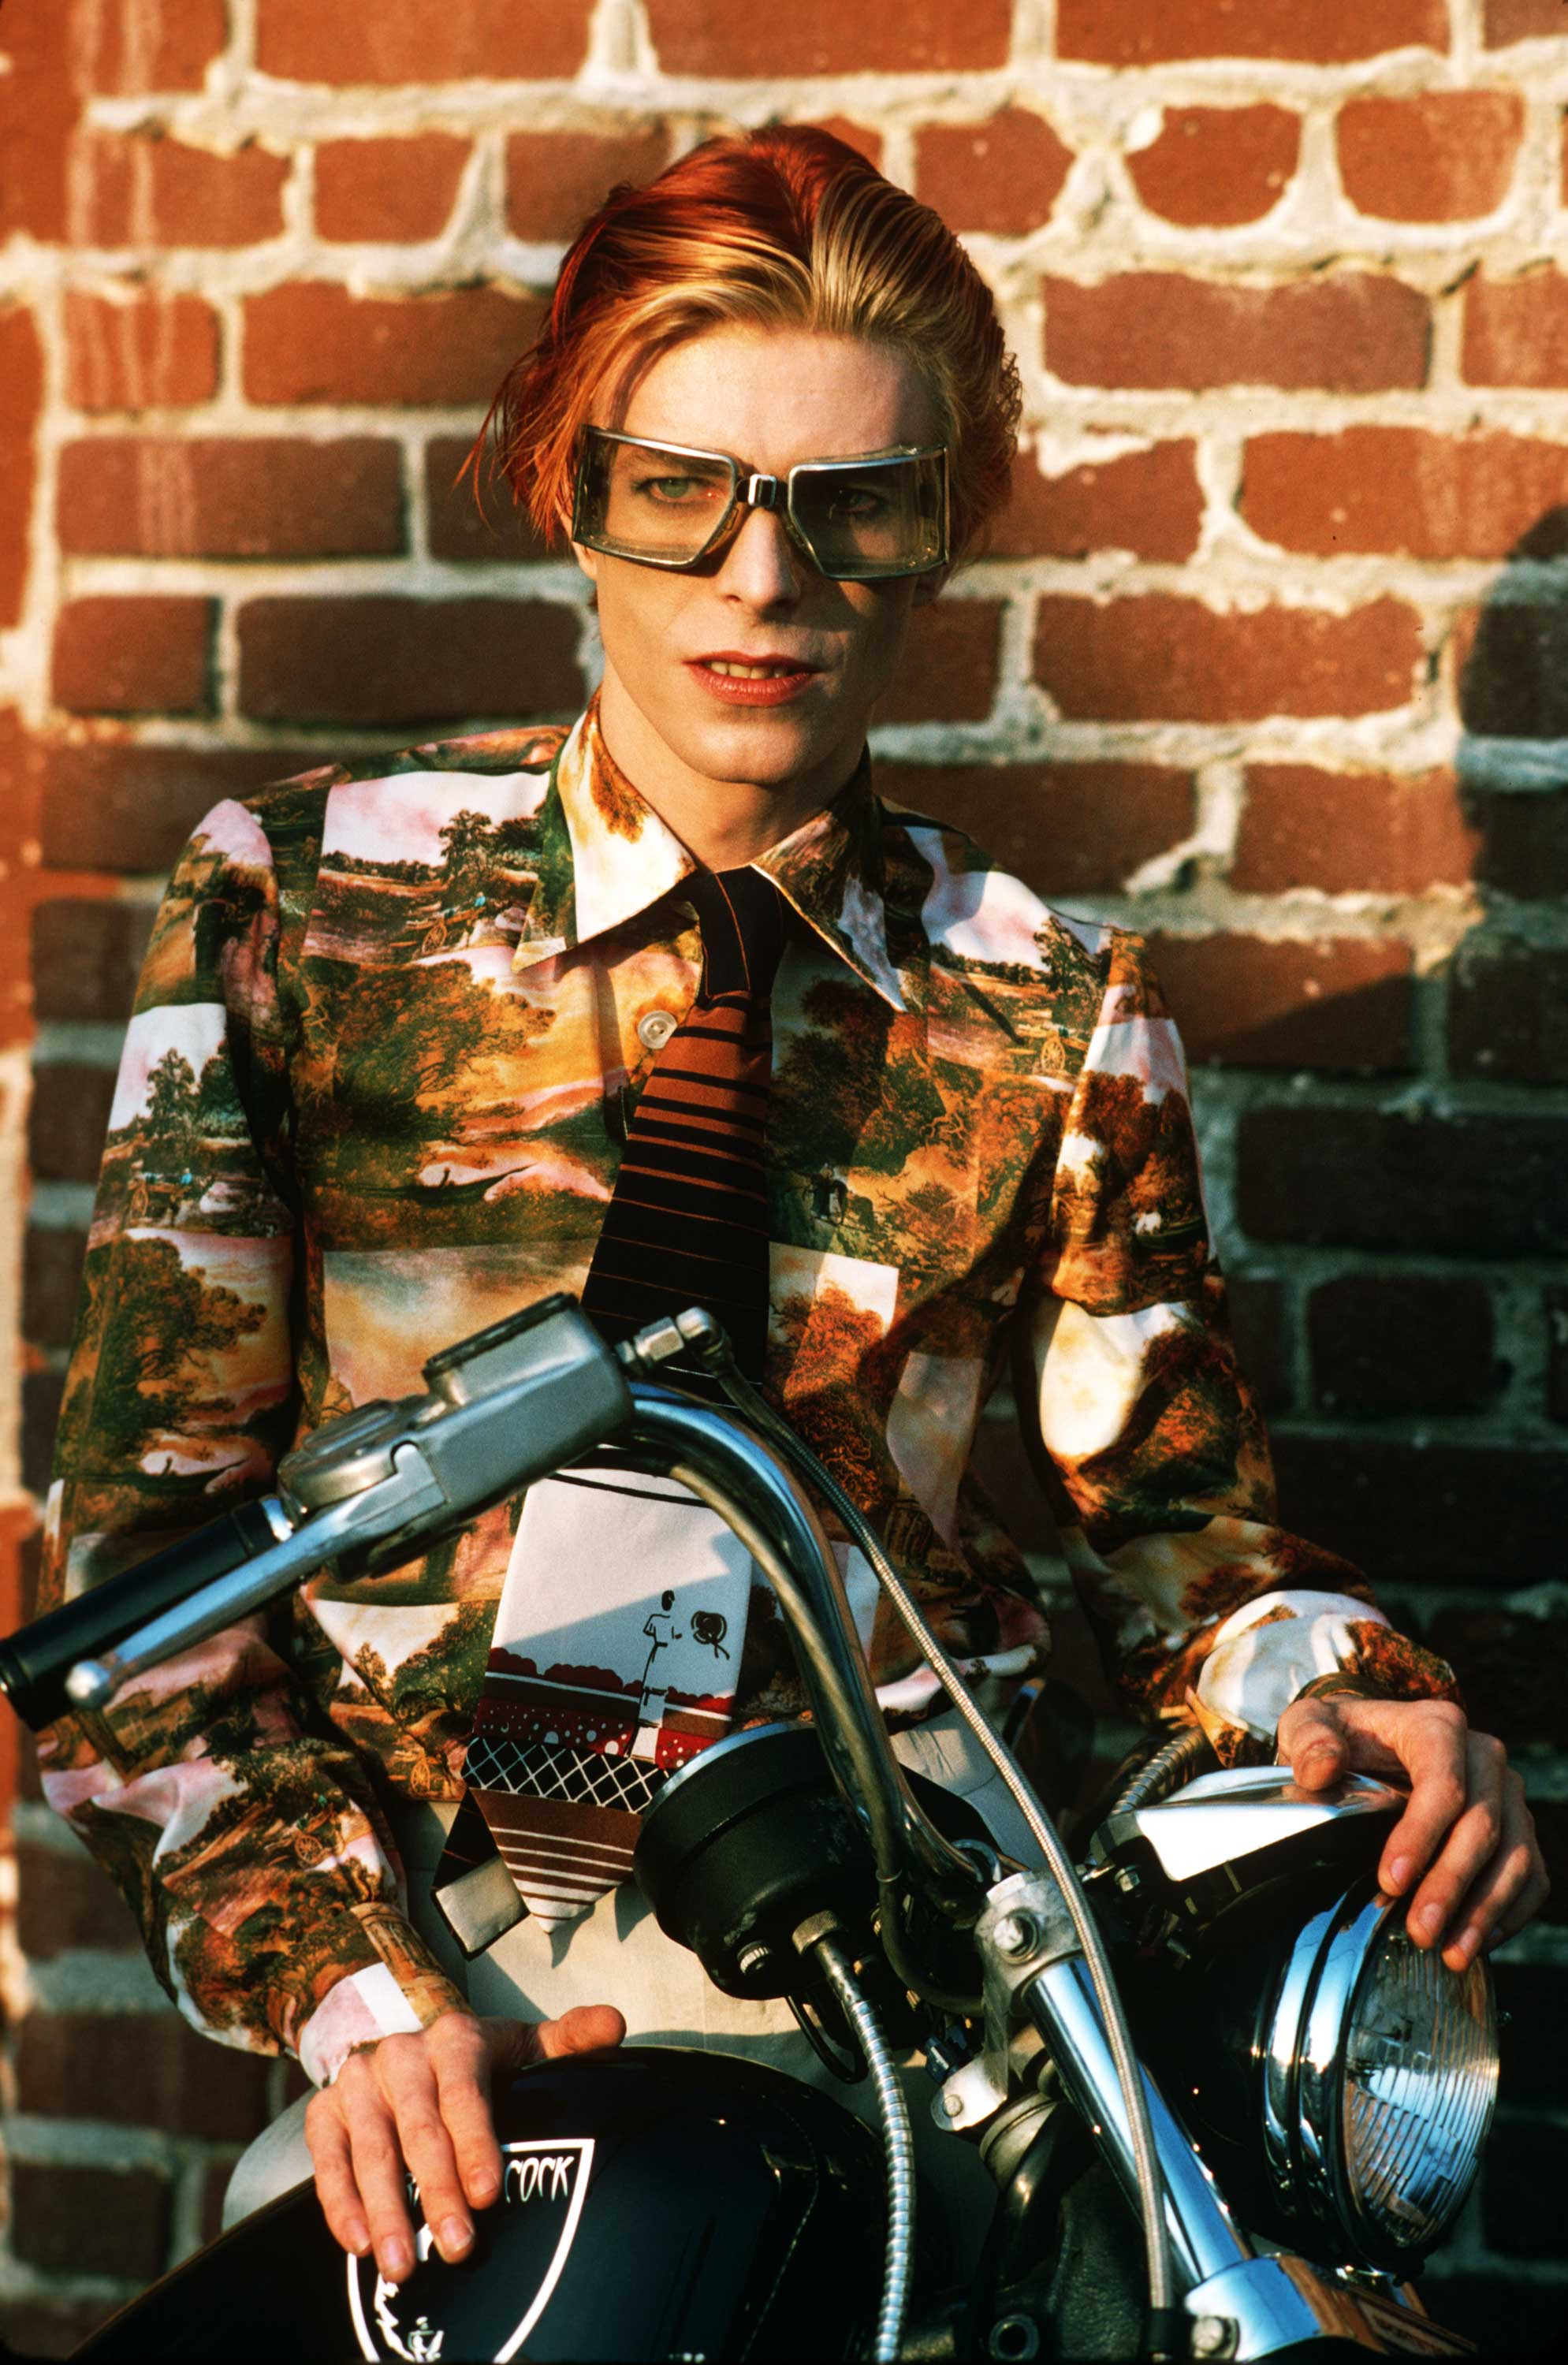 In this previously unpublished photo, David is seen with goggles and bike. Los Angeles, 1974.